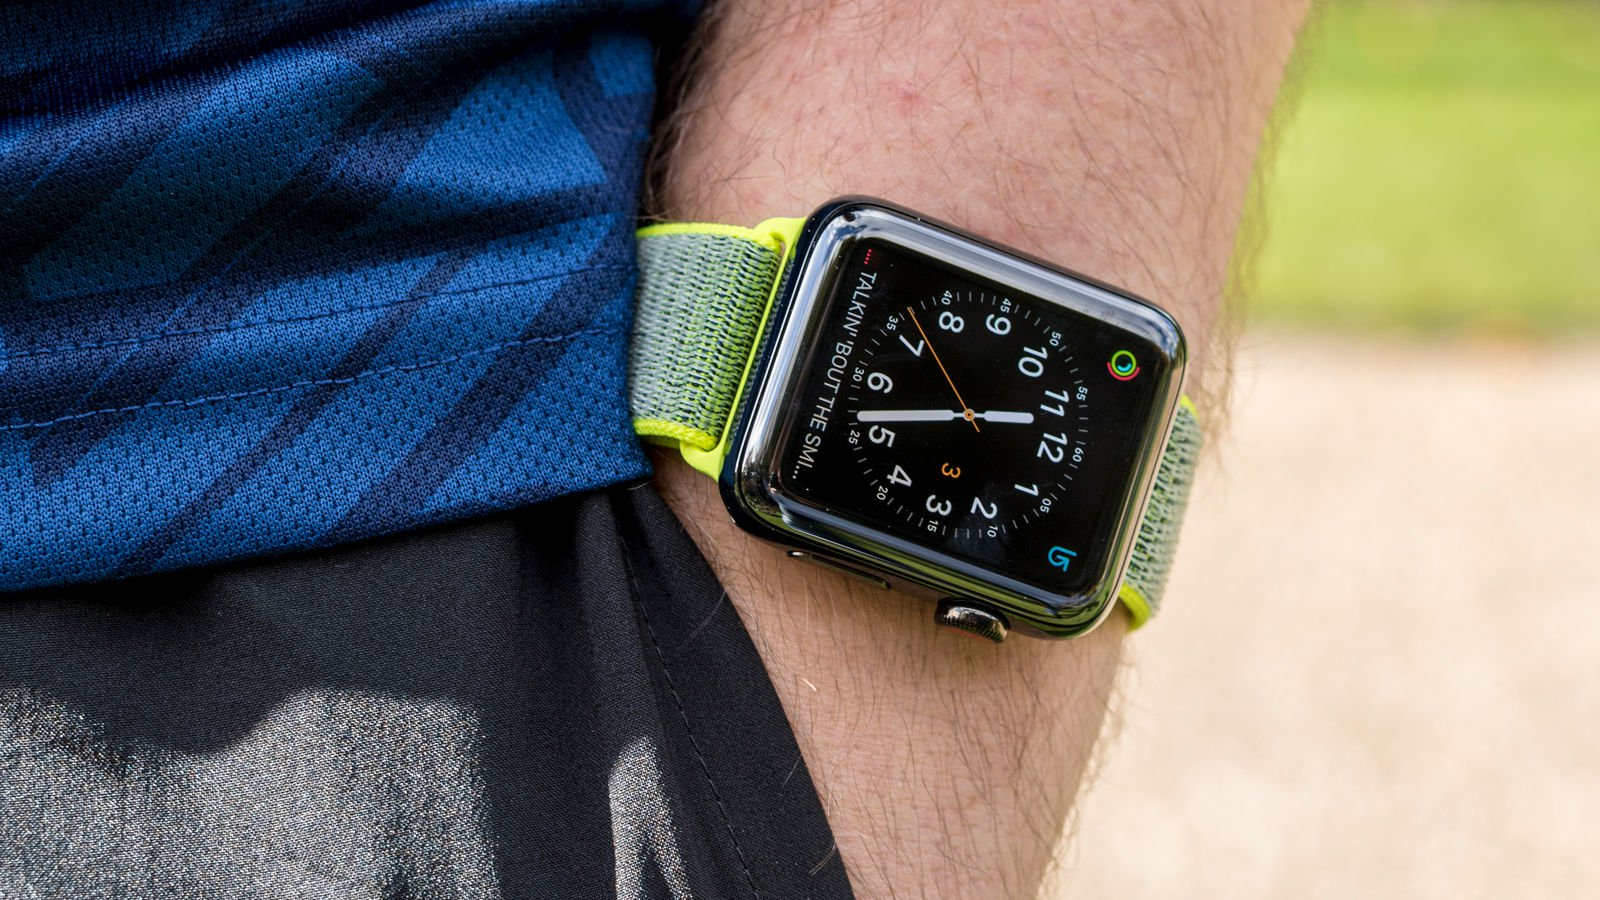 Apple Watch Series 3 review: Cellular